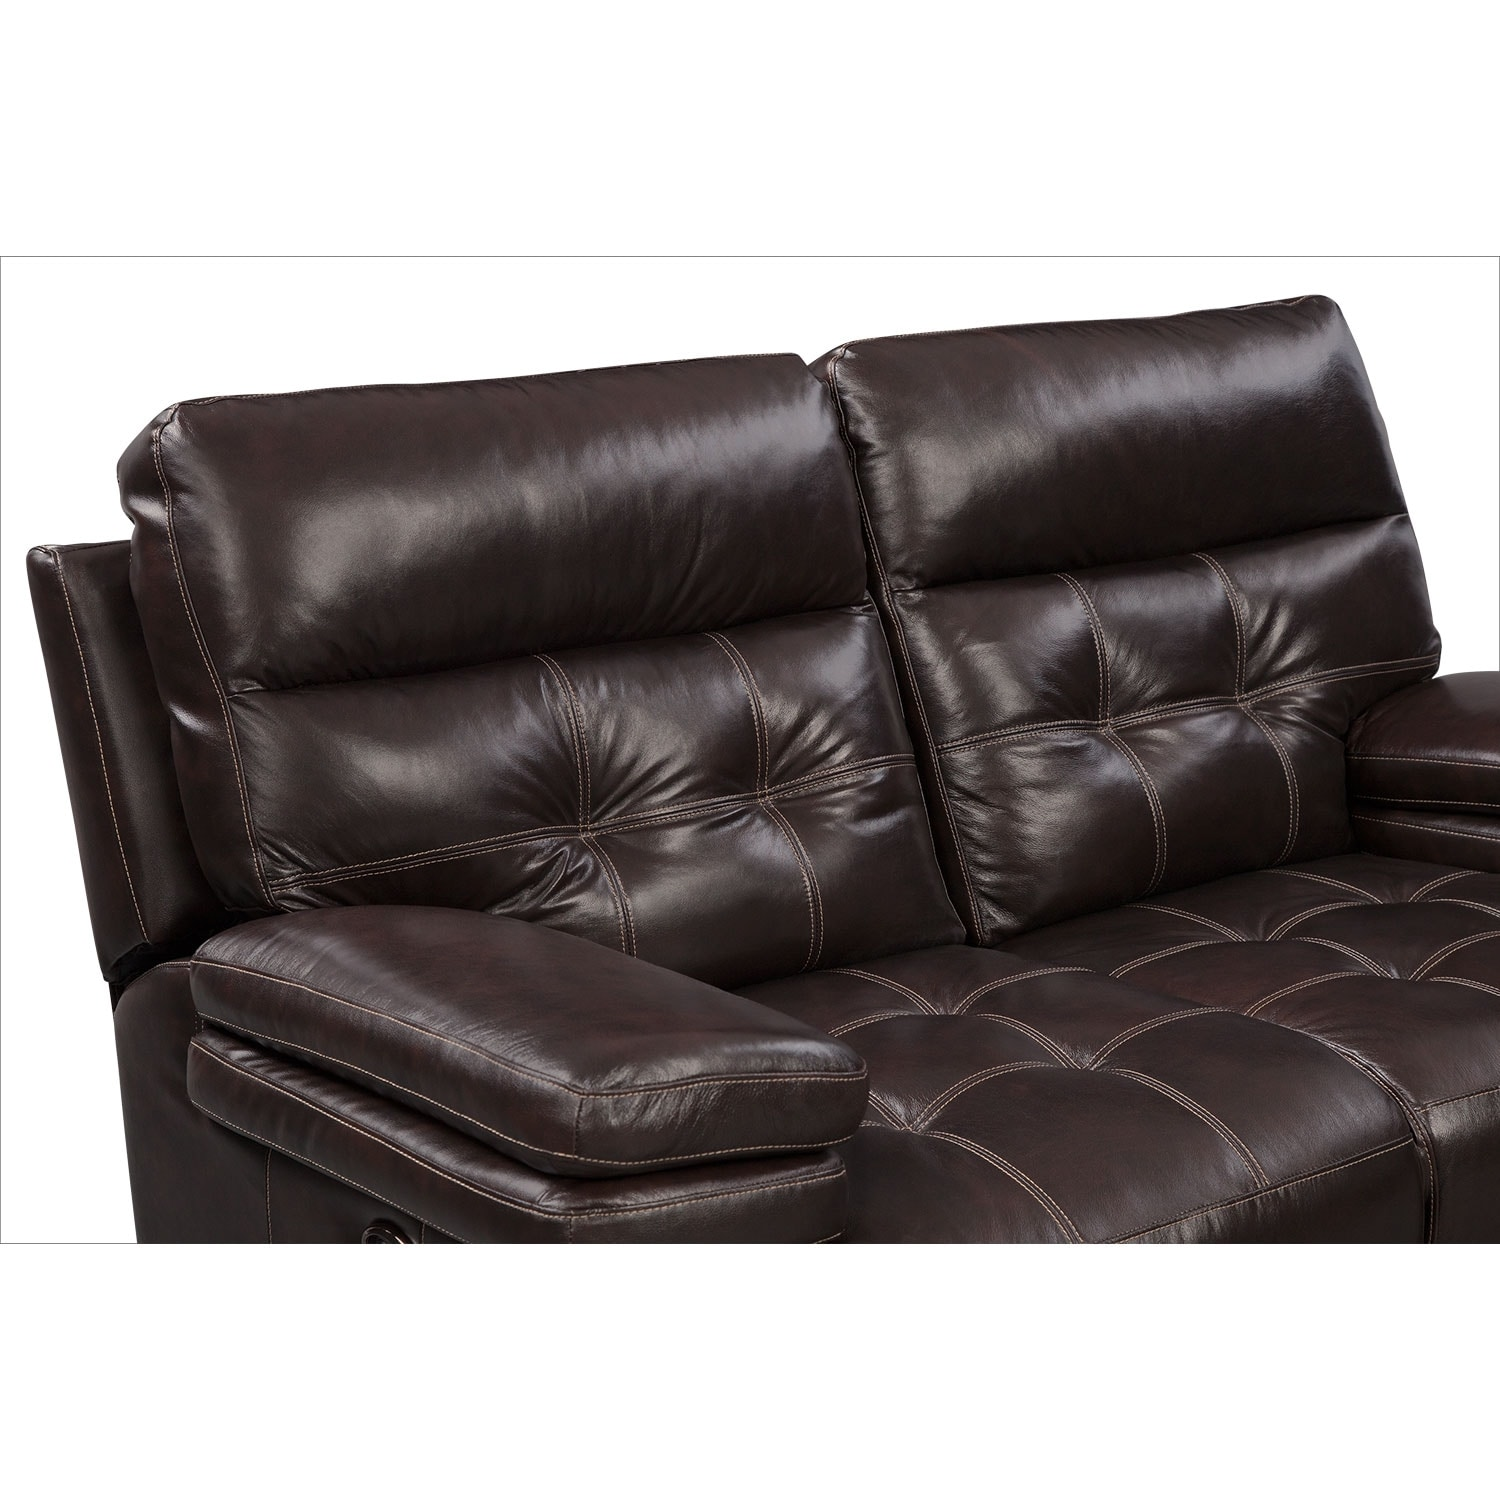 Brisco power reclining loveseat brown value city furniture Power loveseat recliner